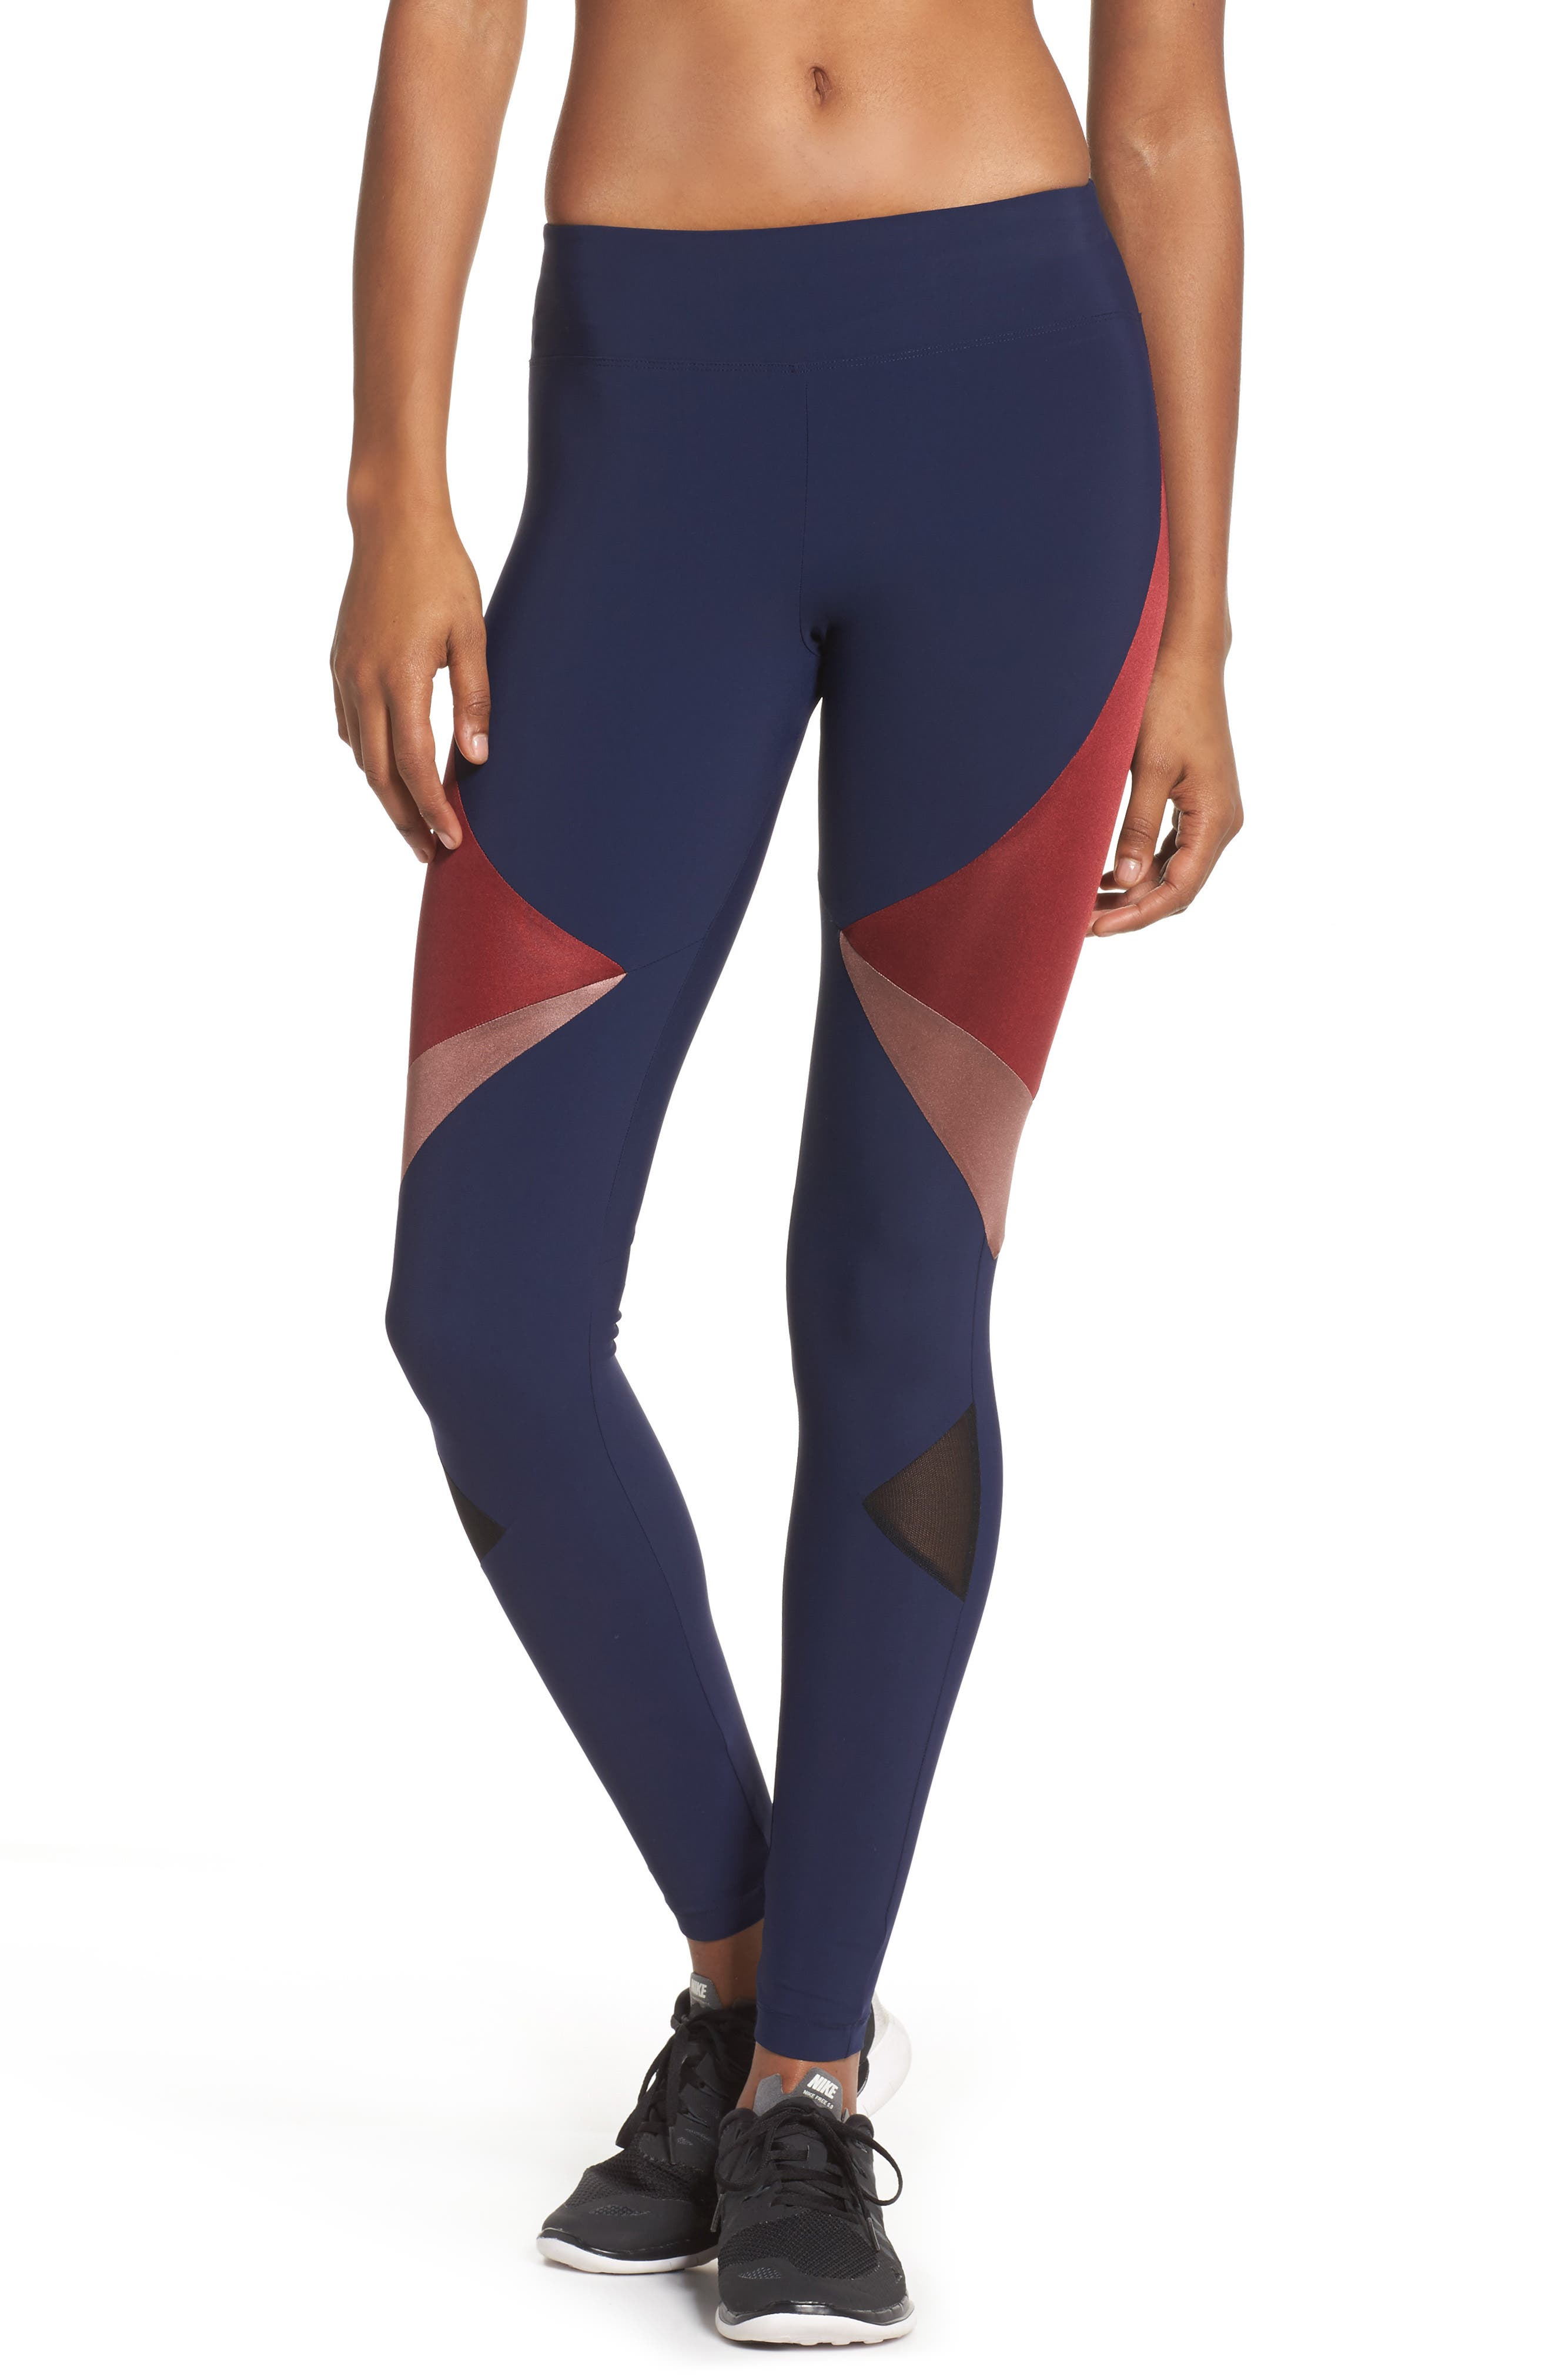 BoomBoom Athletica Compression Leggings